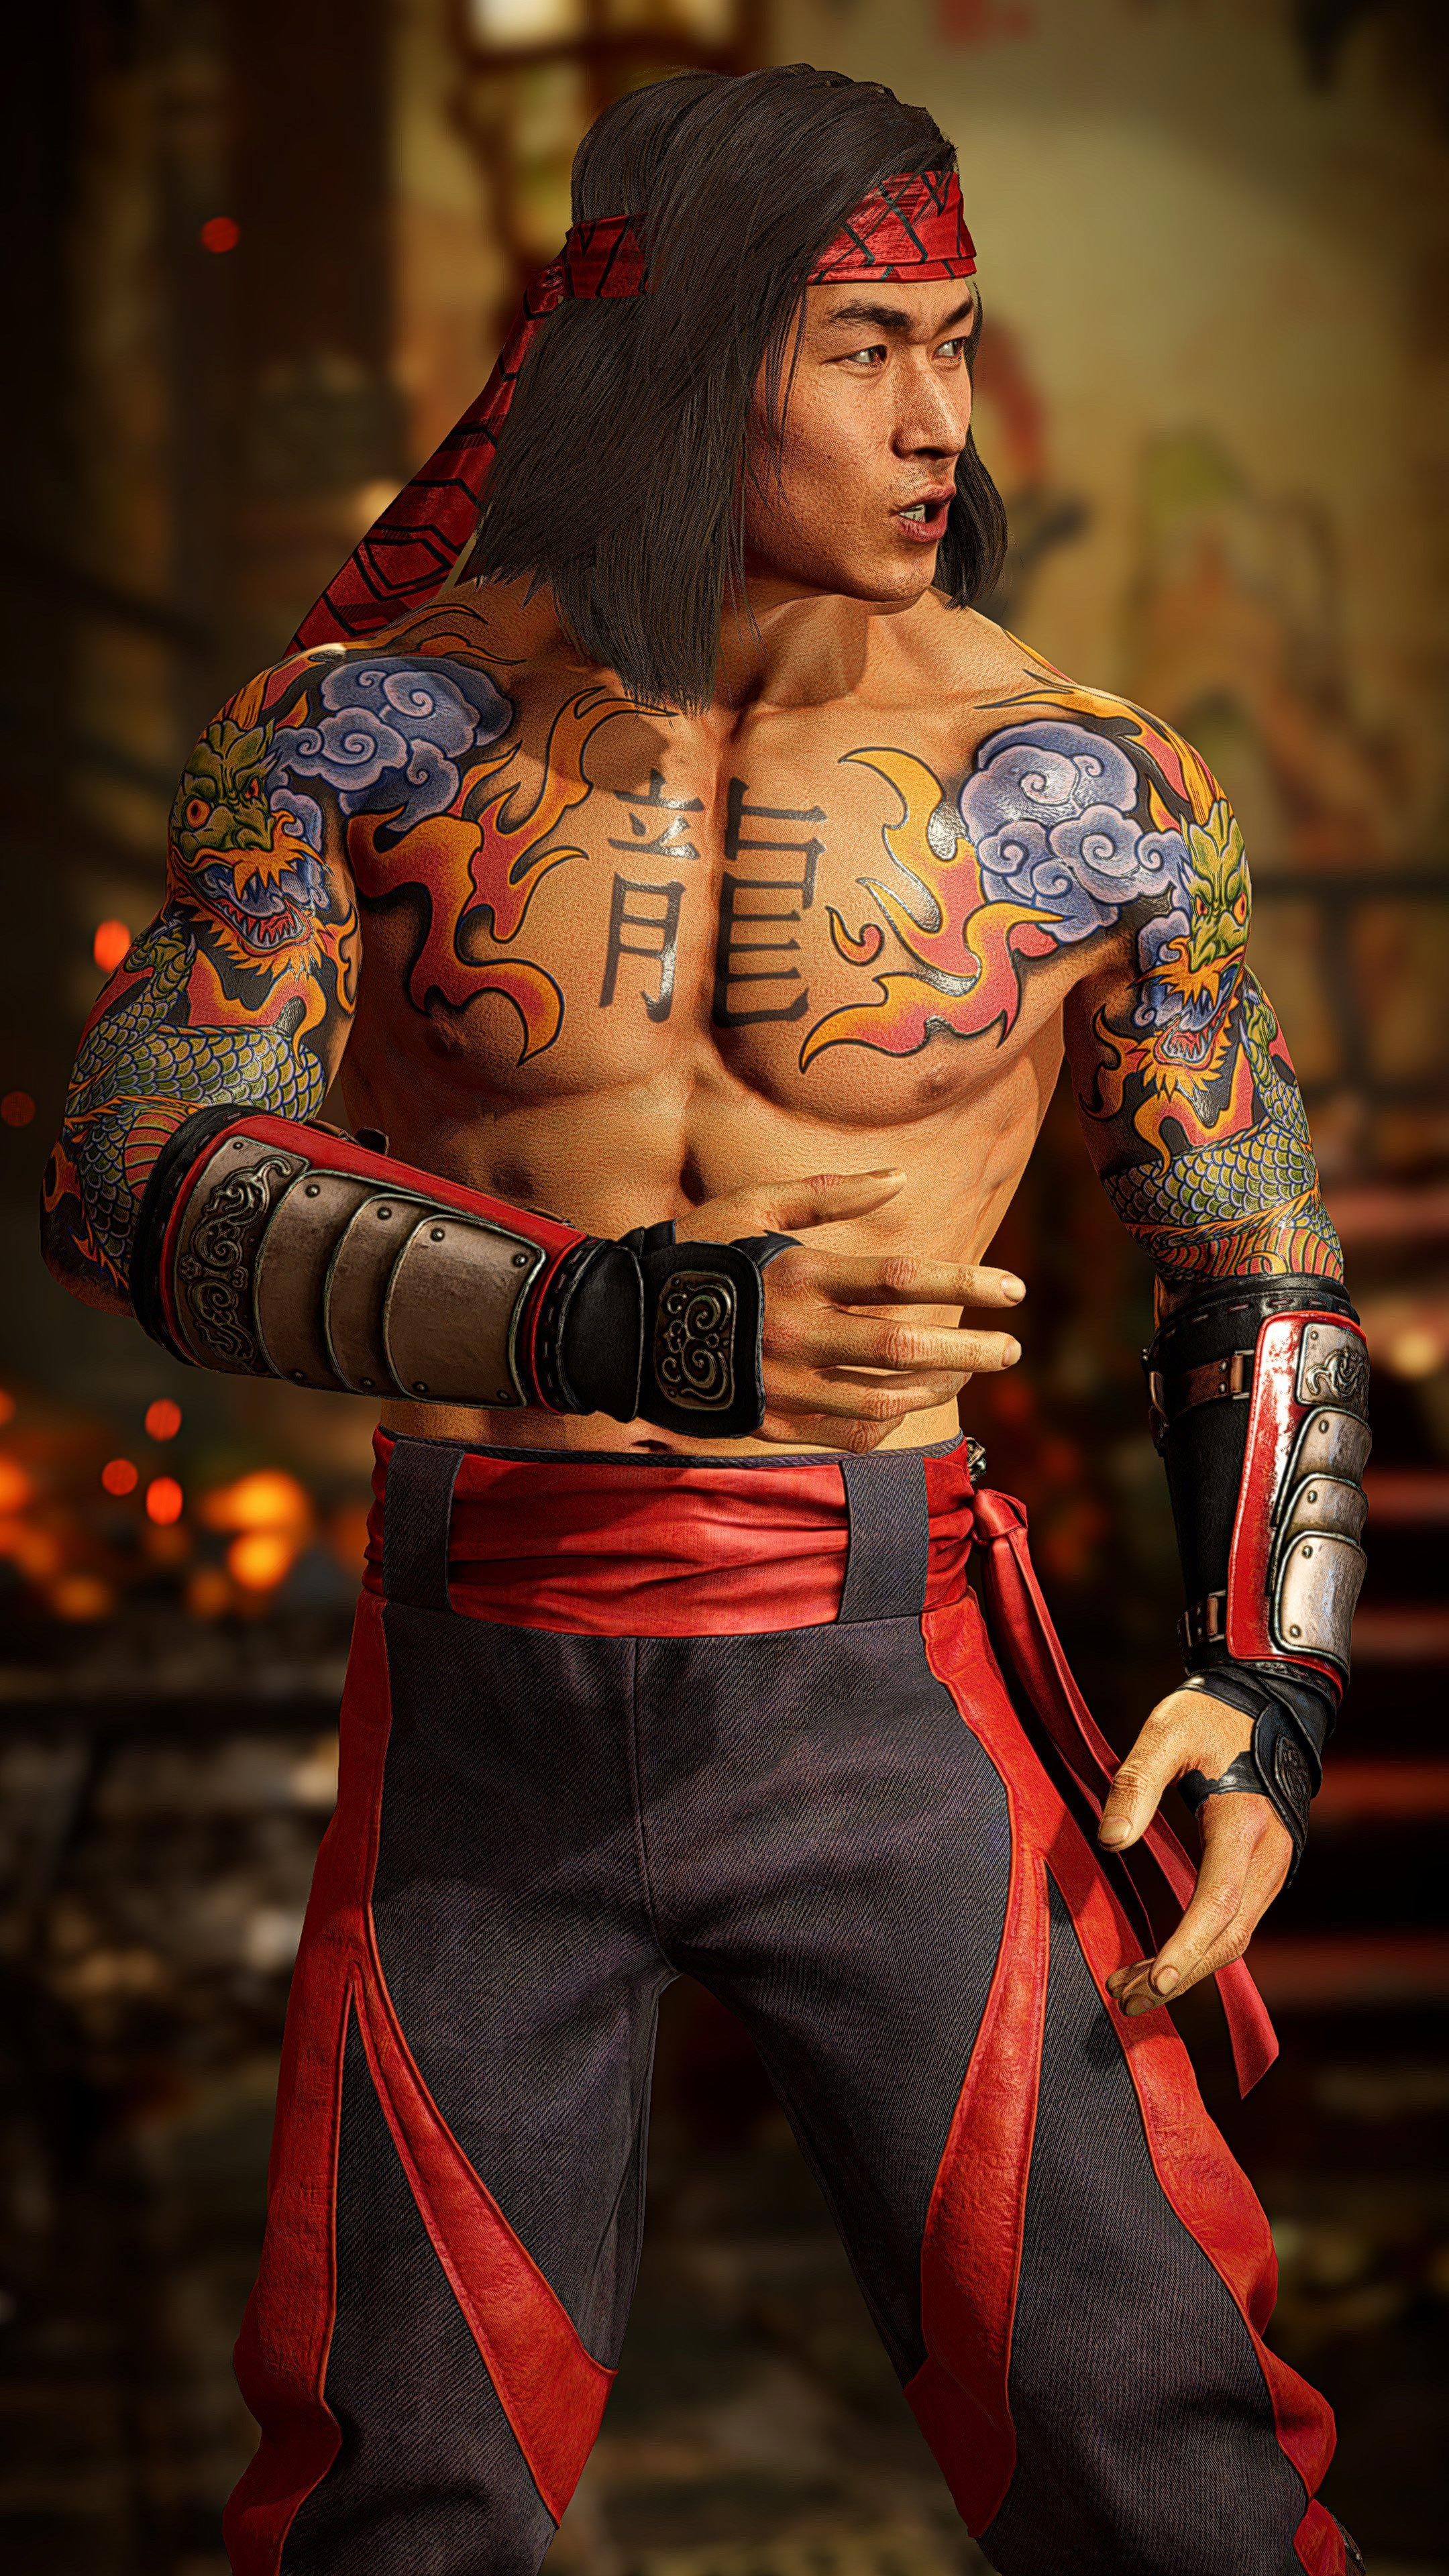 Liu Kang and Kotal Kahn rock their body paint and ink in Mortal Kombat 11 Ultimate 2 out of 8 image gallery